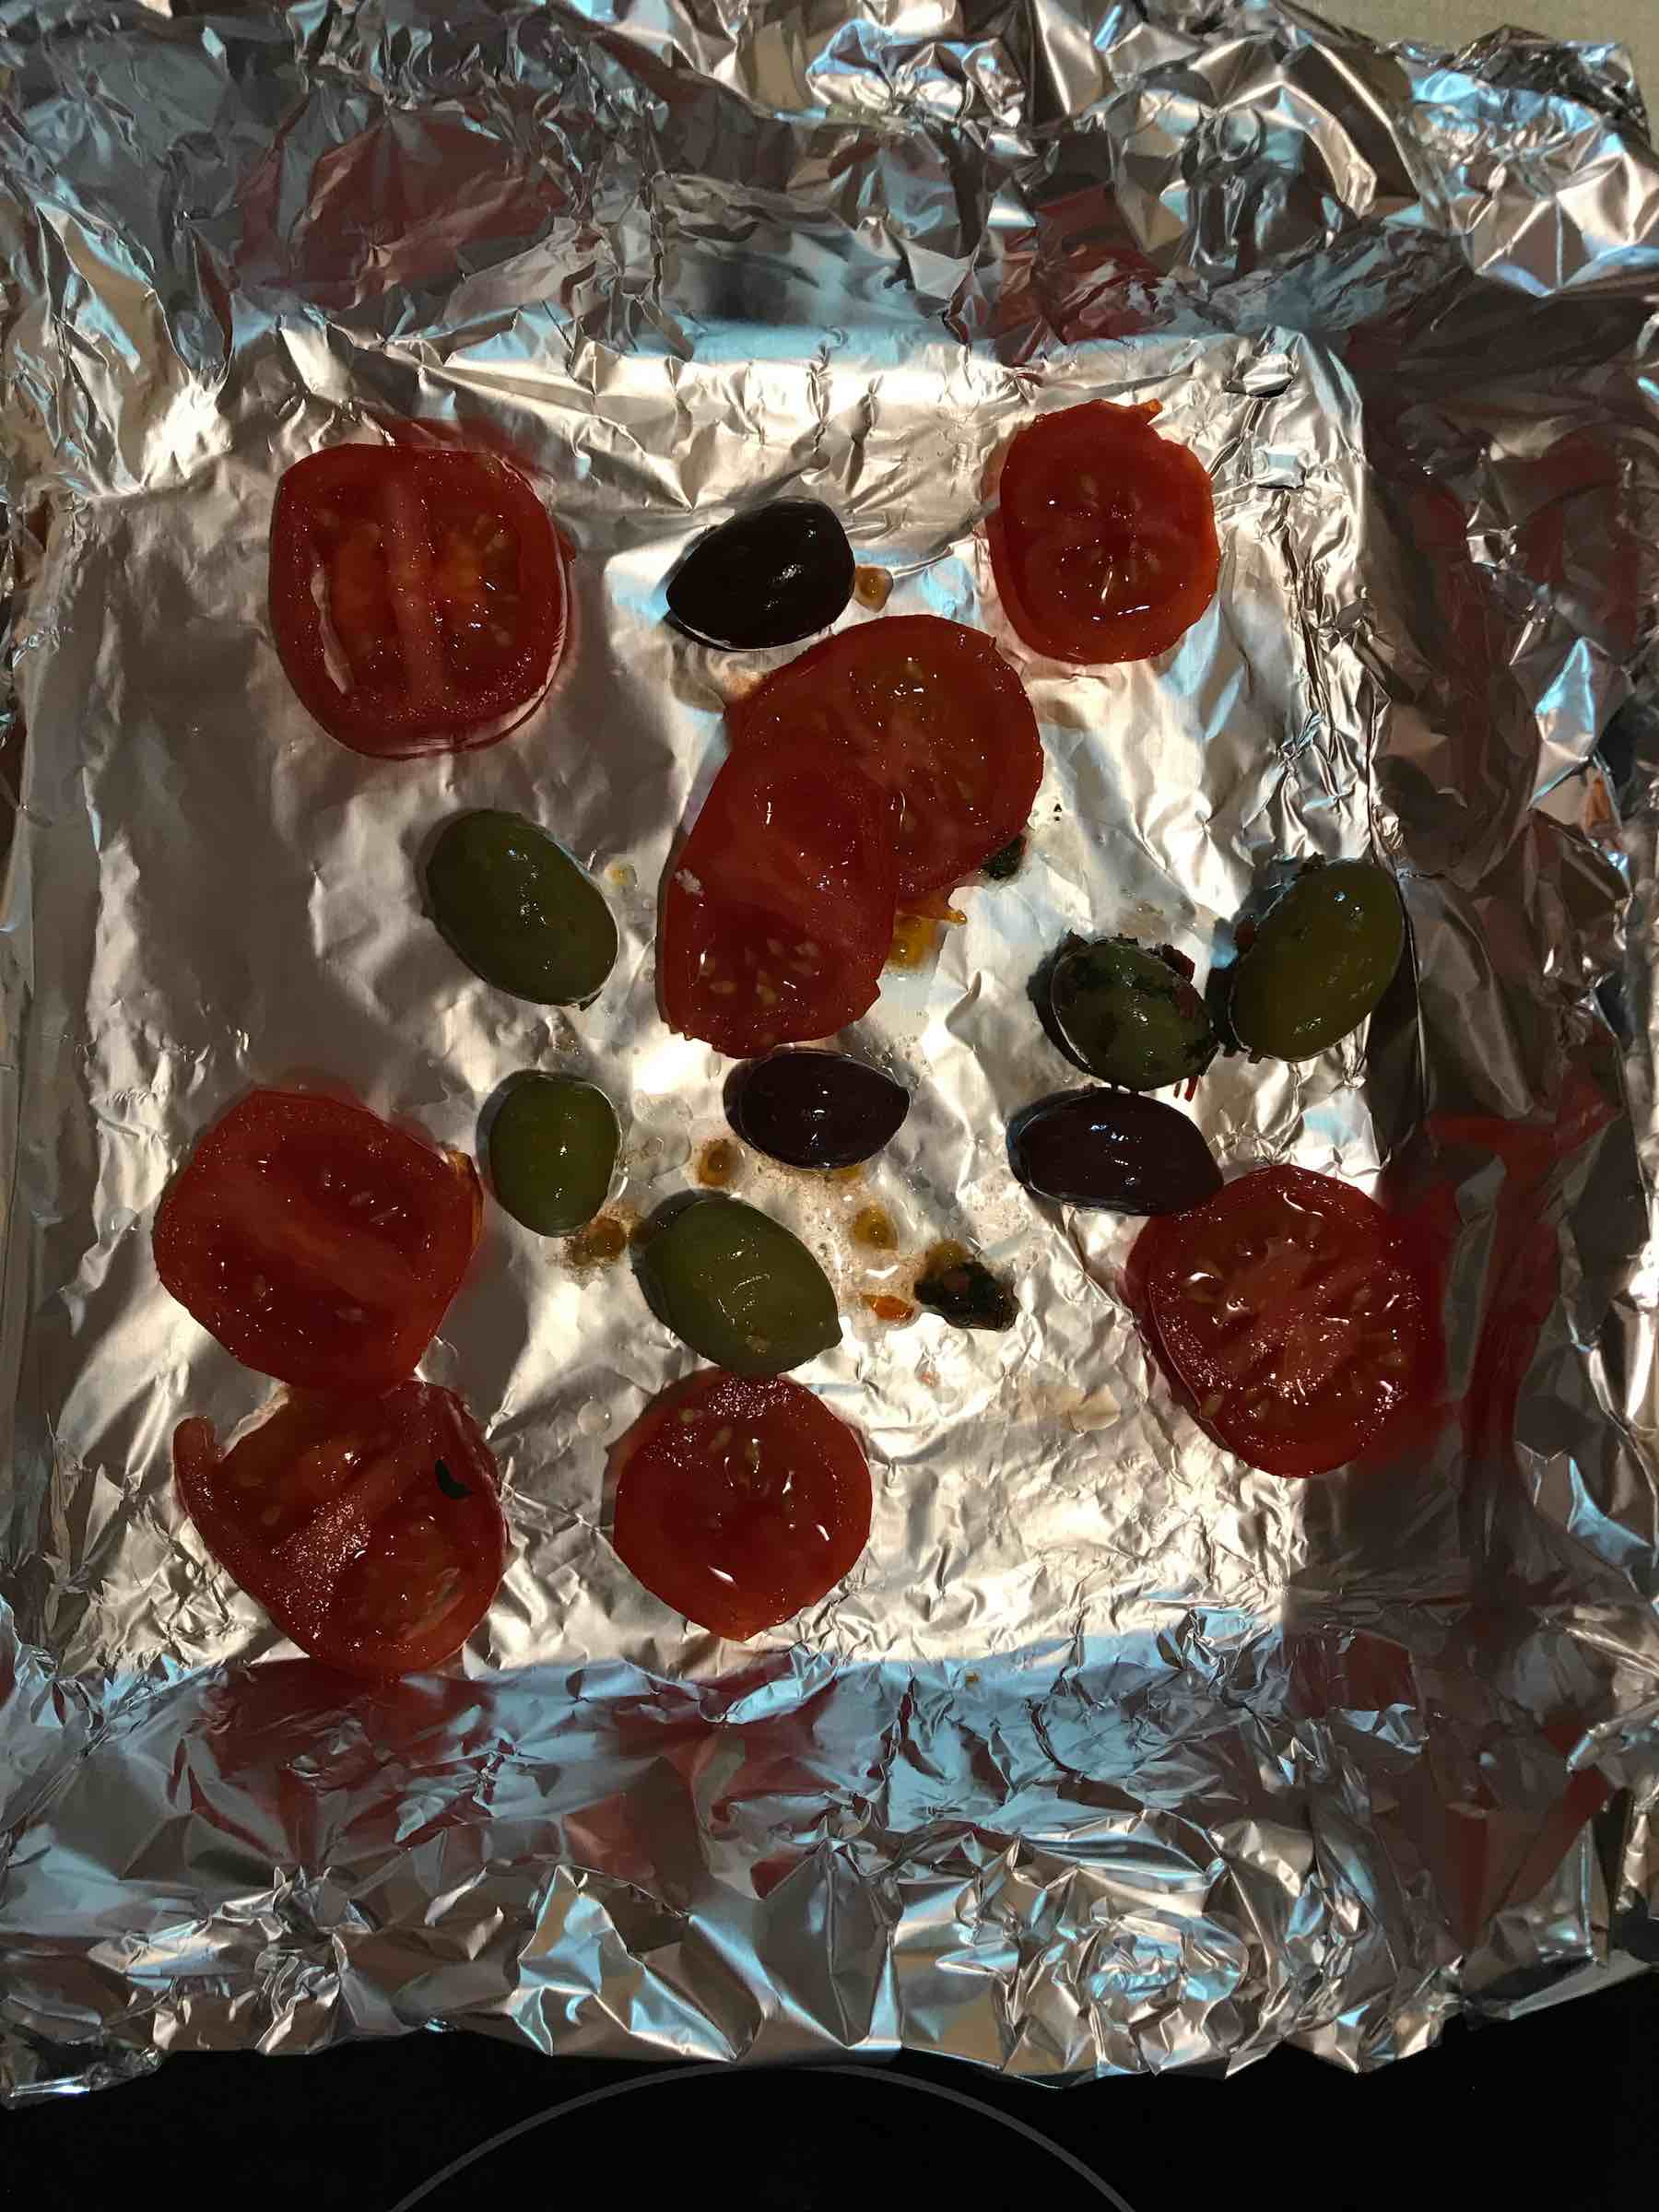 Tomatoes and olives on foil